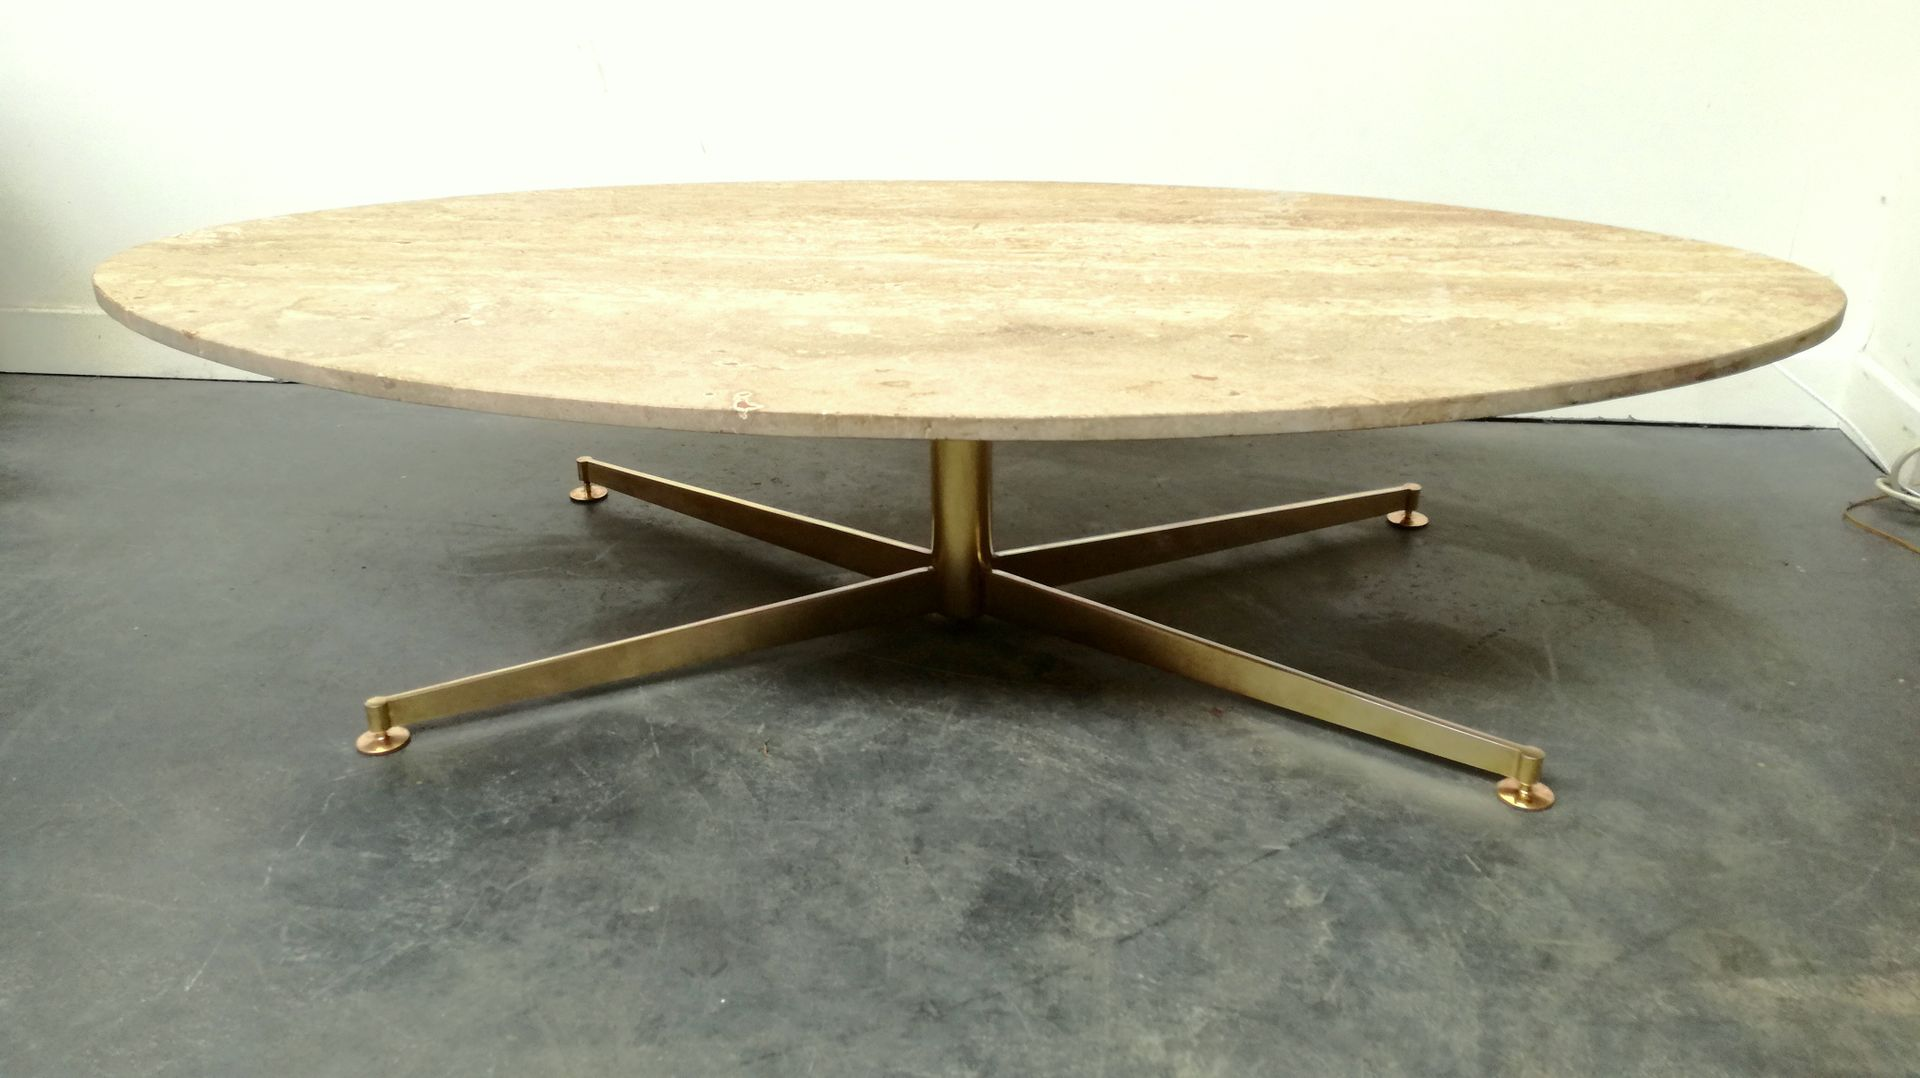 Vintage Marble & Brass Coffee Table by Michel Kin for Aflex for